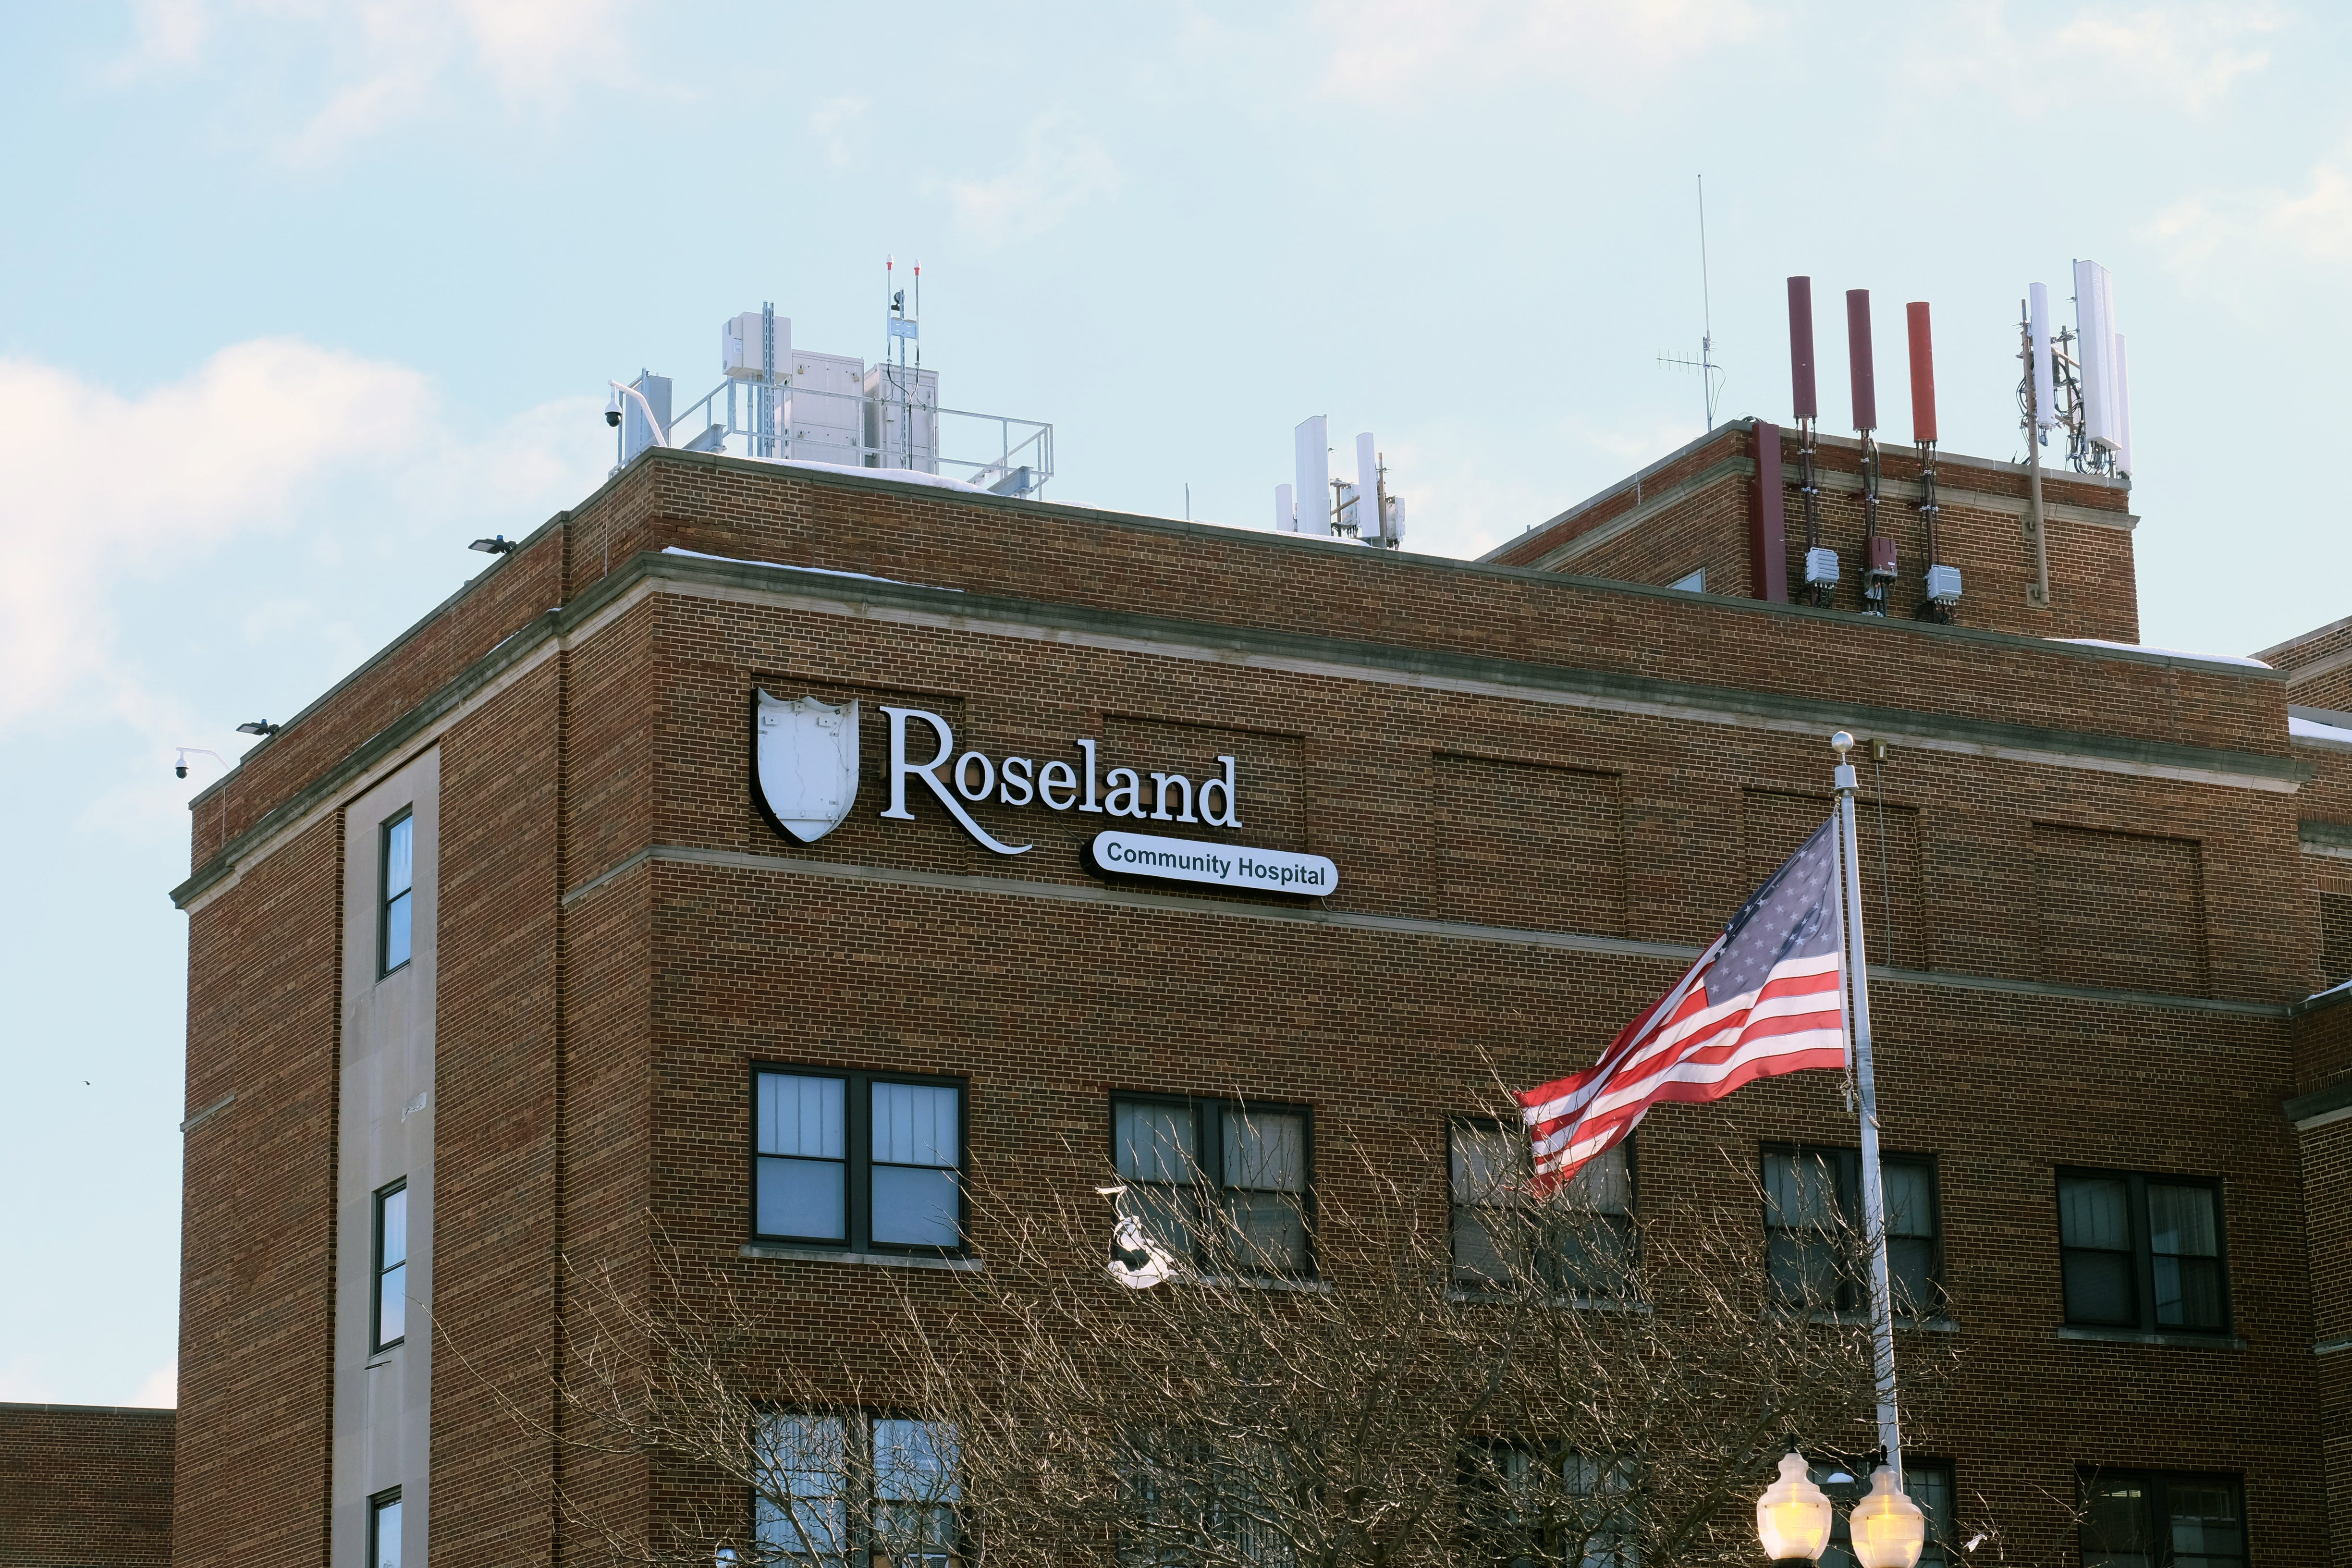 Roseland, on Chicago's far south side, includes part of the 60628 ZIP code, where approximately 4% of residents have received a first vaccine dose, according to city data.